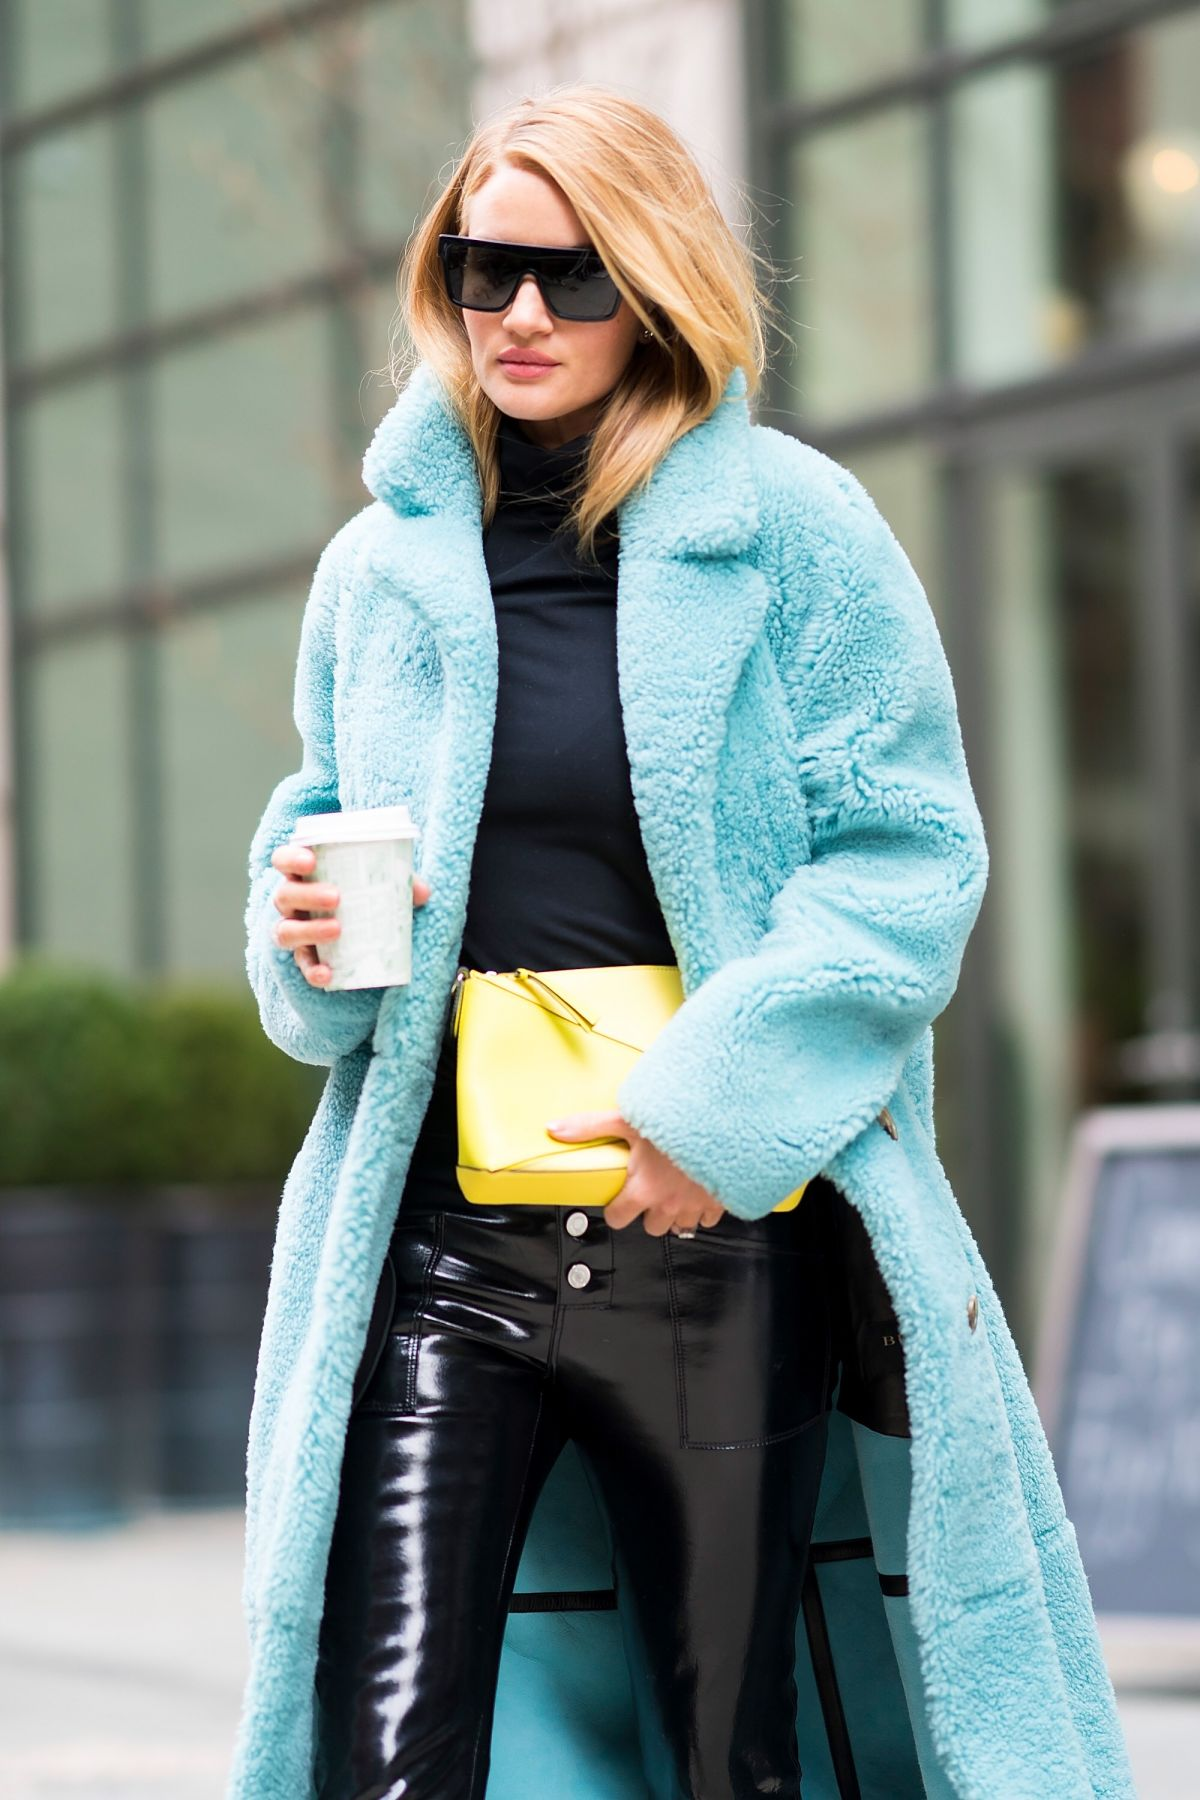 Rosie Huntington Whiteley Is Seen Wearing A Burberry Coat Rta Pants With Loweve